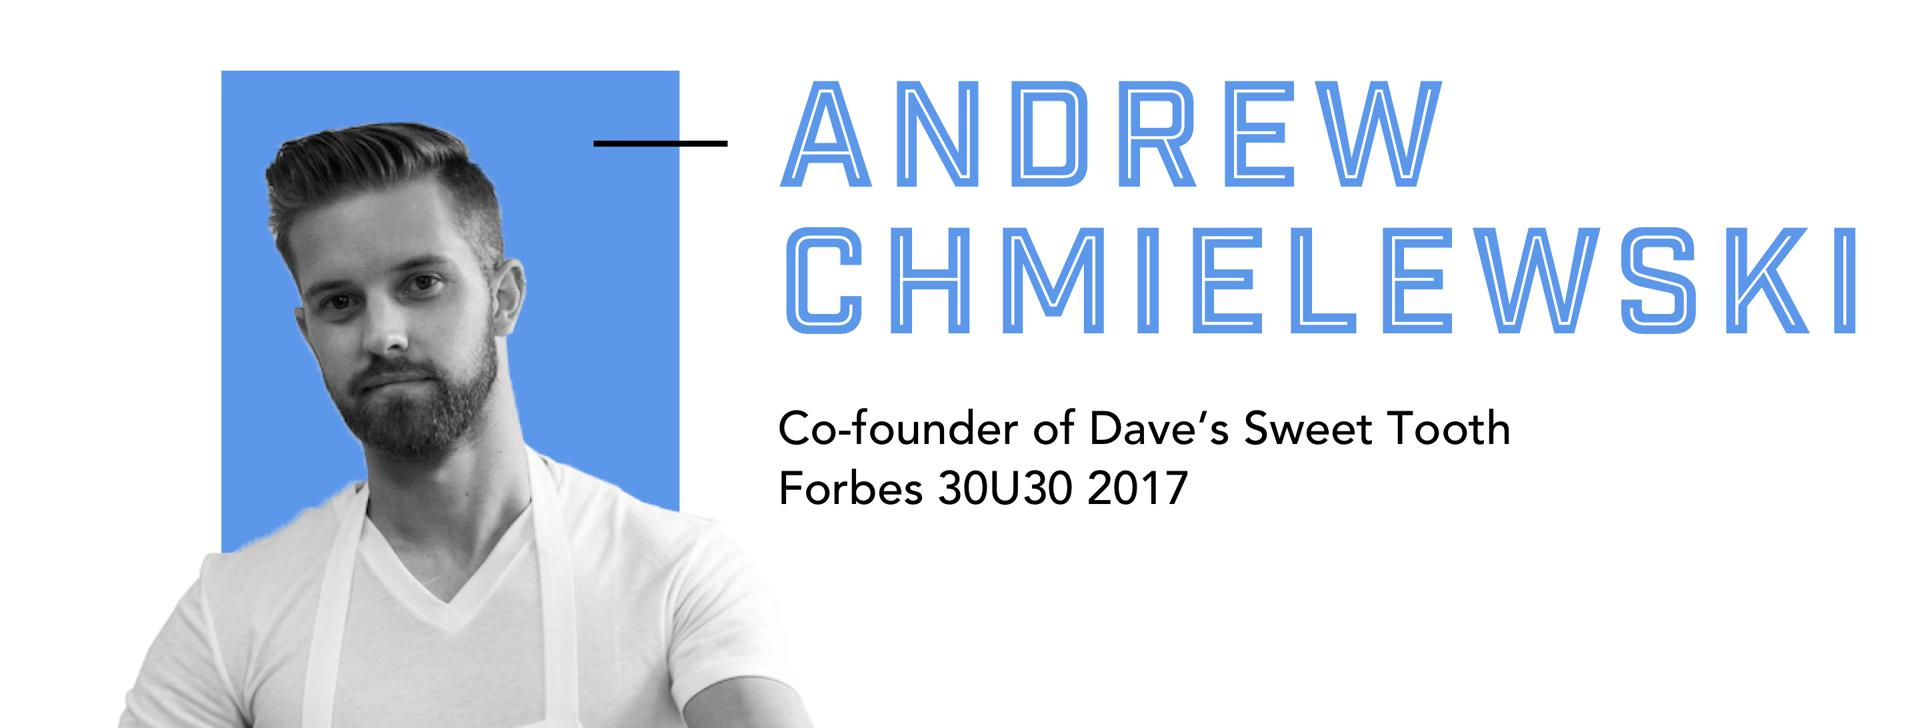 Andrew Chmielewski, co-founder of Dave's Sweet Tooth Forbes 30U30 2017